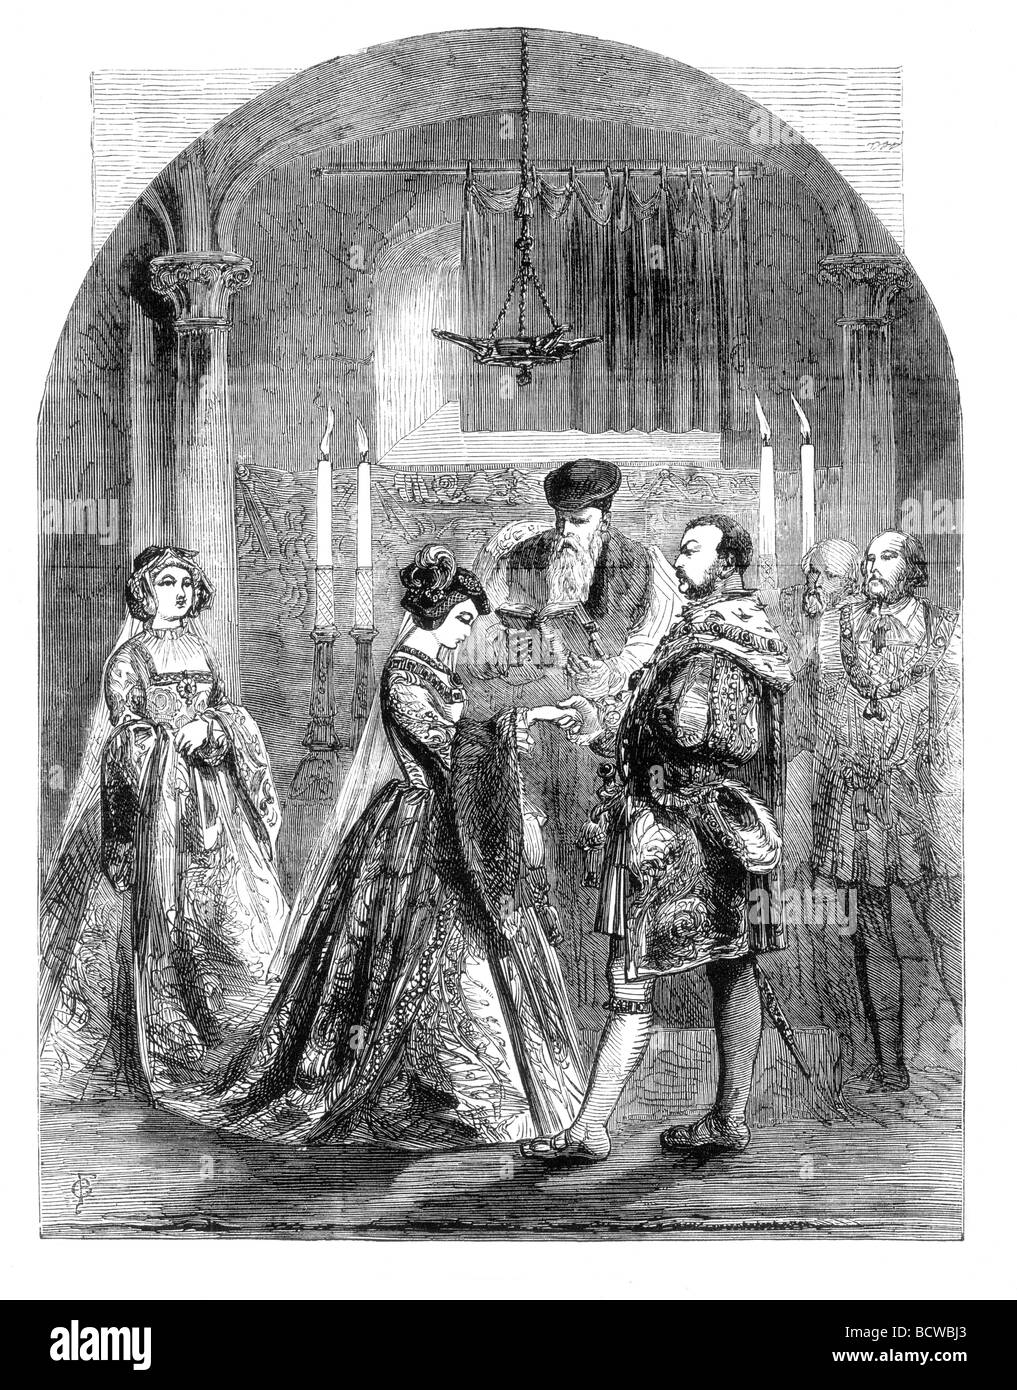 Private Marriage of Anne Bolyn and King Henry VIII of England Stock Photo